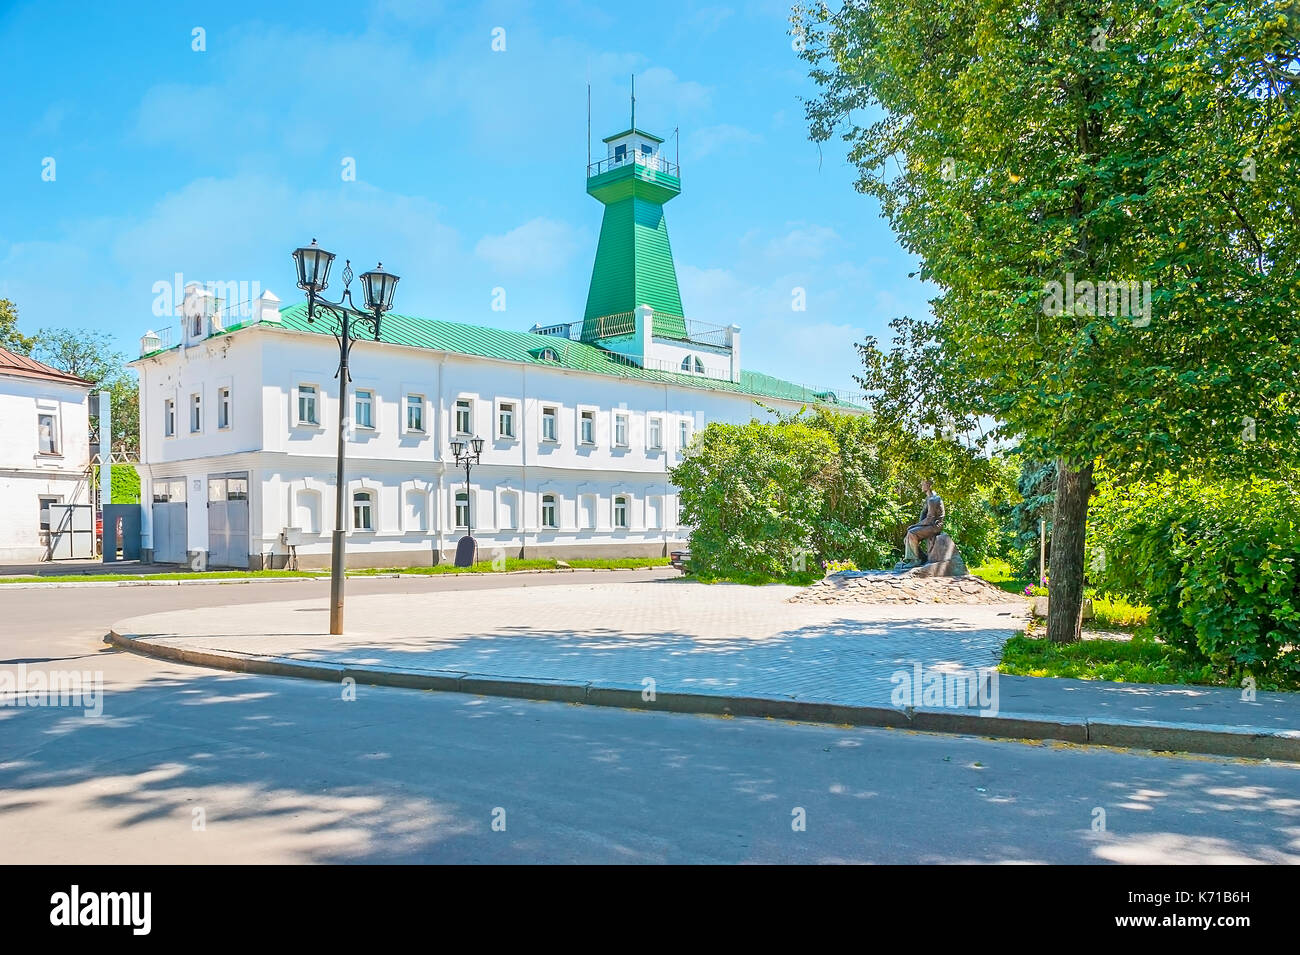 The building of the old fire station with a watchtower, located in historic city neighborhood, Suzdal, Russia. - Stock Image